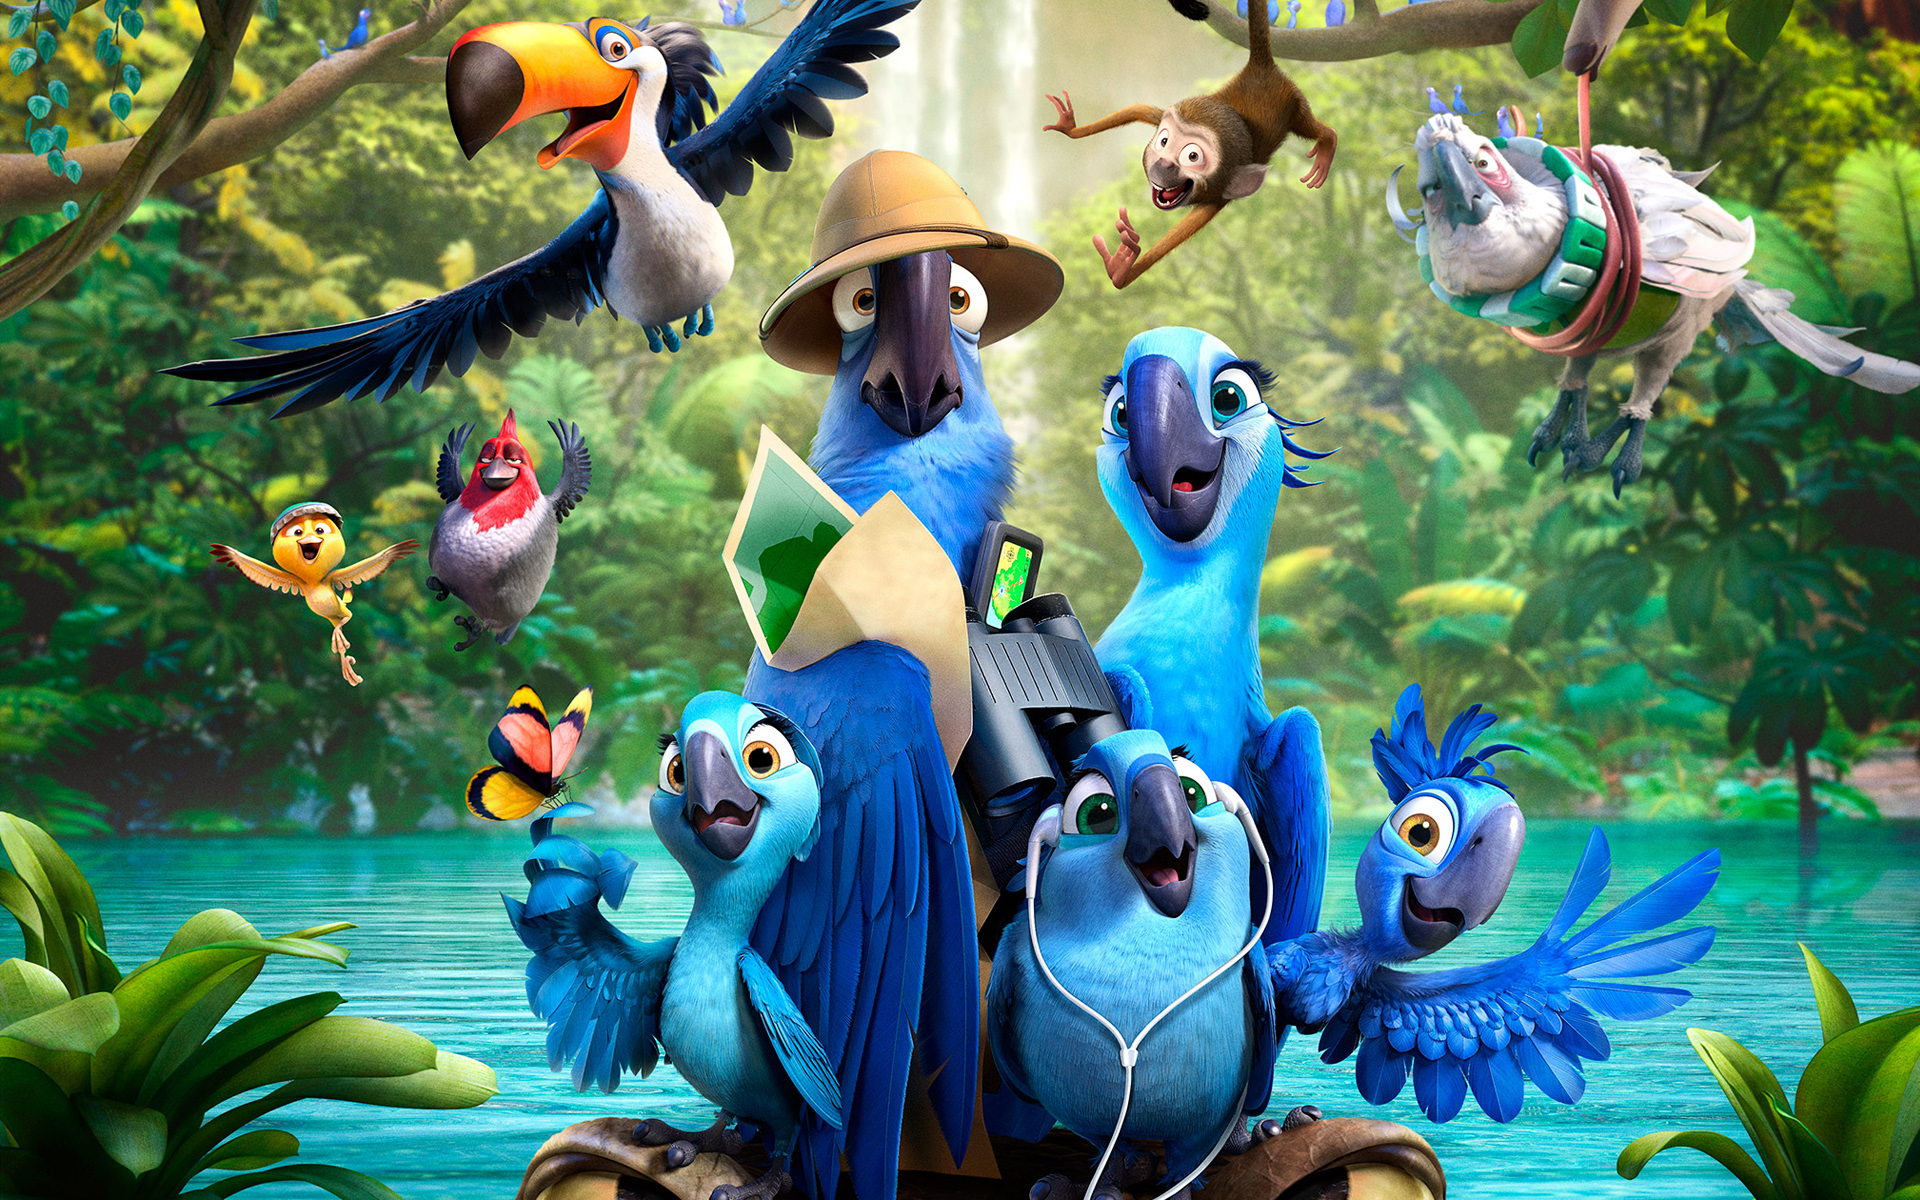 Rio-2 It will have made roughly $100M worldwide after its debut this weekend here in the states. A huge force for the picture on social media, of course, ...